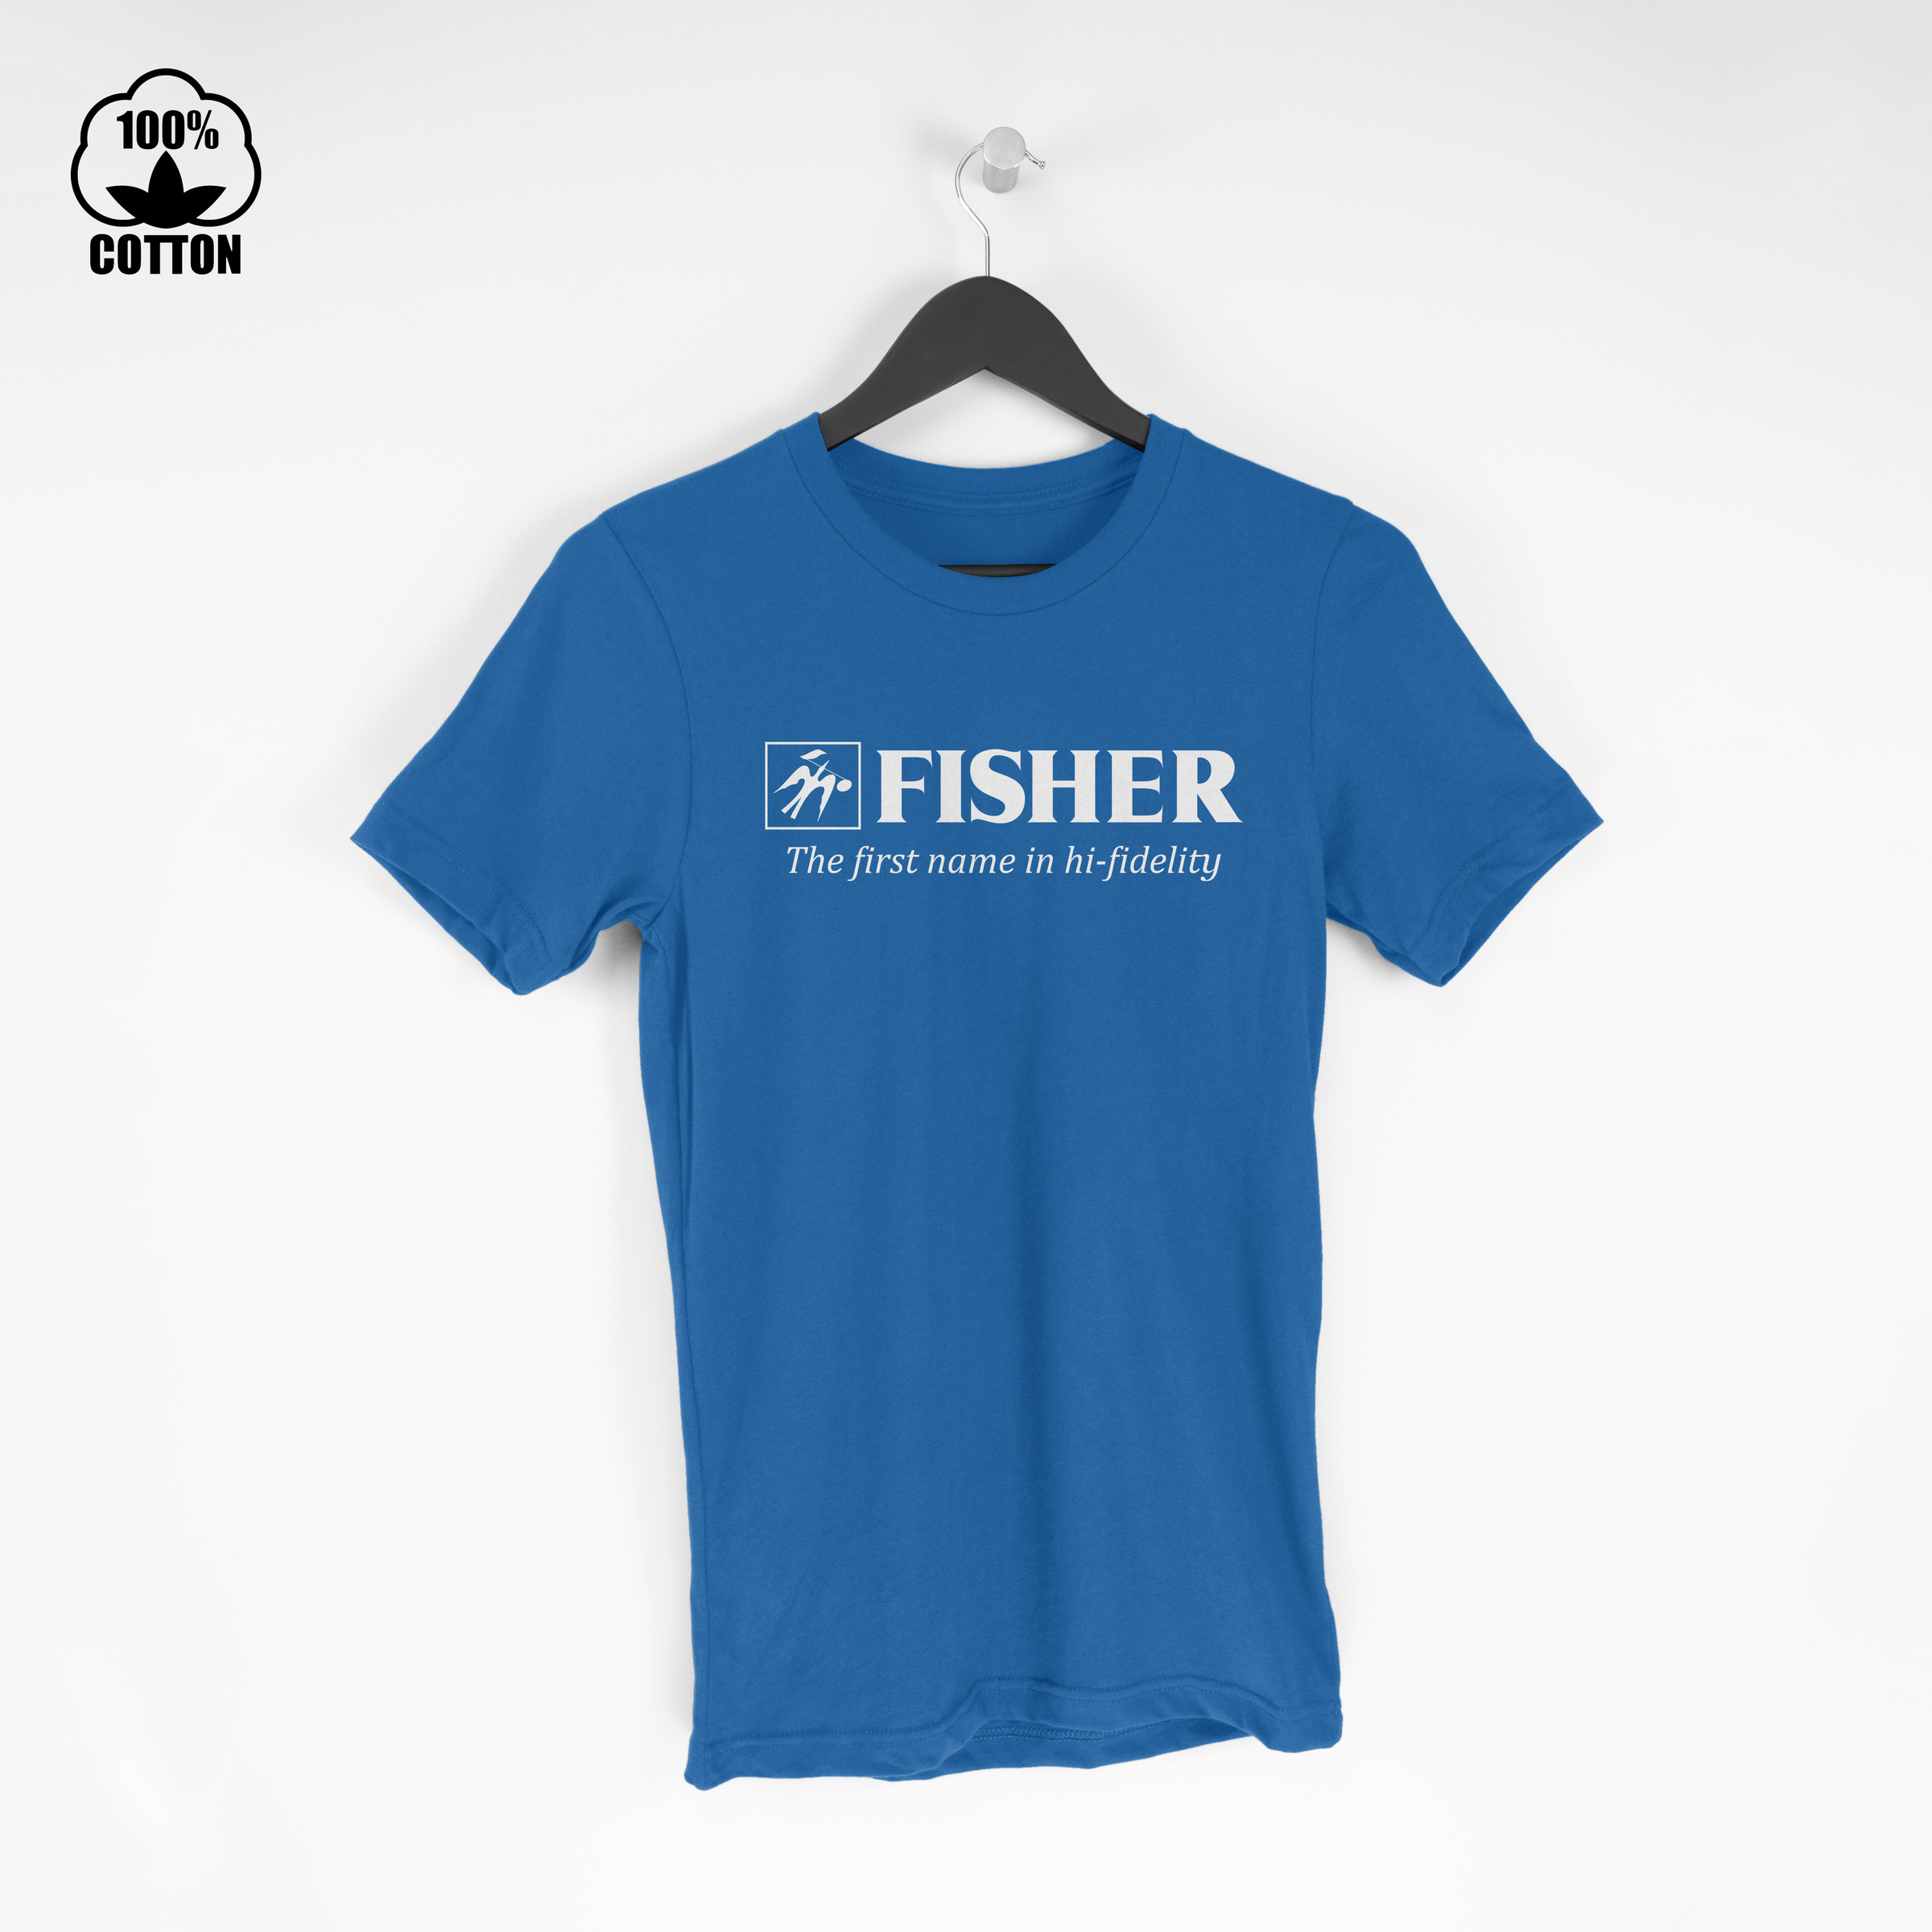 Fisher Logo Electronics Audio Stereo Components Hi-Fi Amplifier Tuner  Tshirt Size M-XXL USA RoyalBlue.jpg